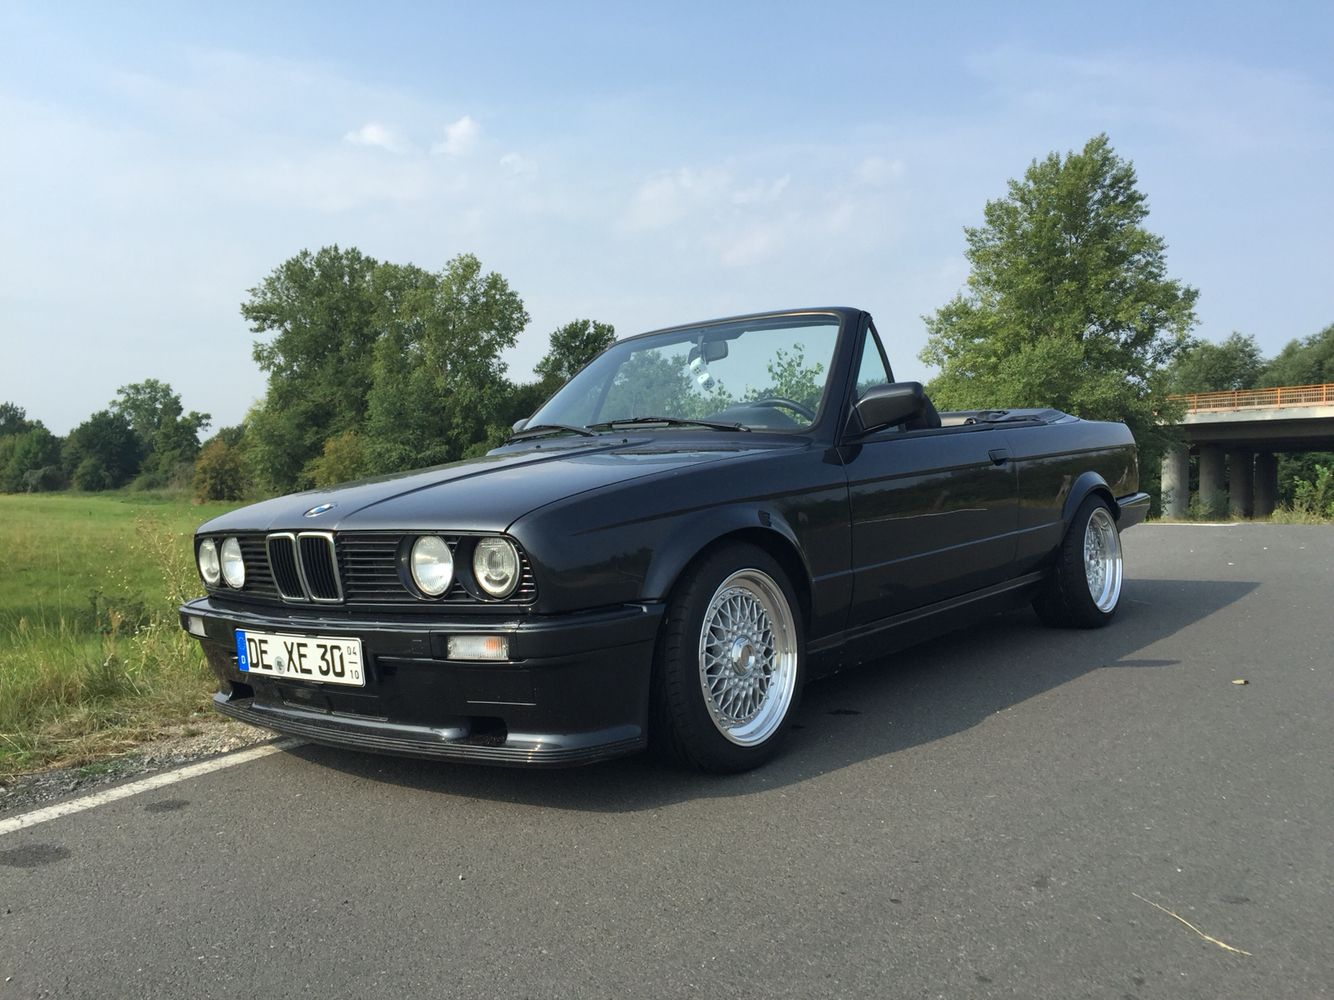 mein bmw e30 cabriolet e30 bmw bmw e30 bmw cars. Black Bedroom Furniture Sets. Home Design Ideas